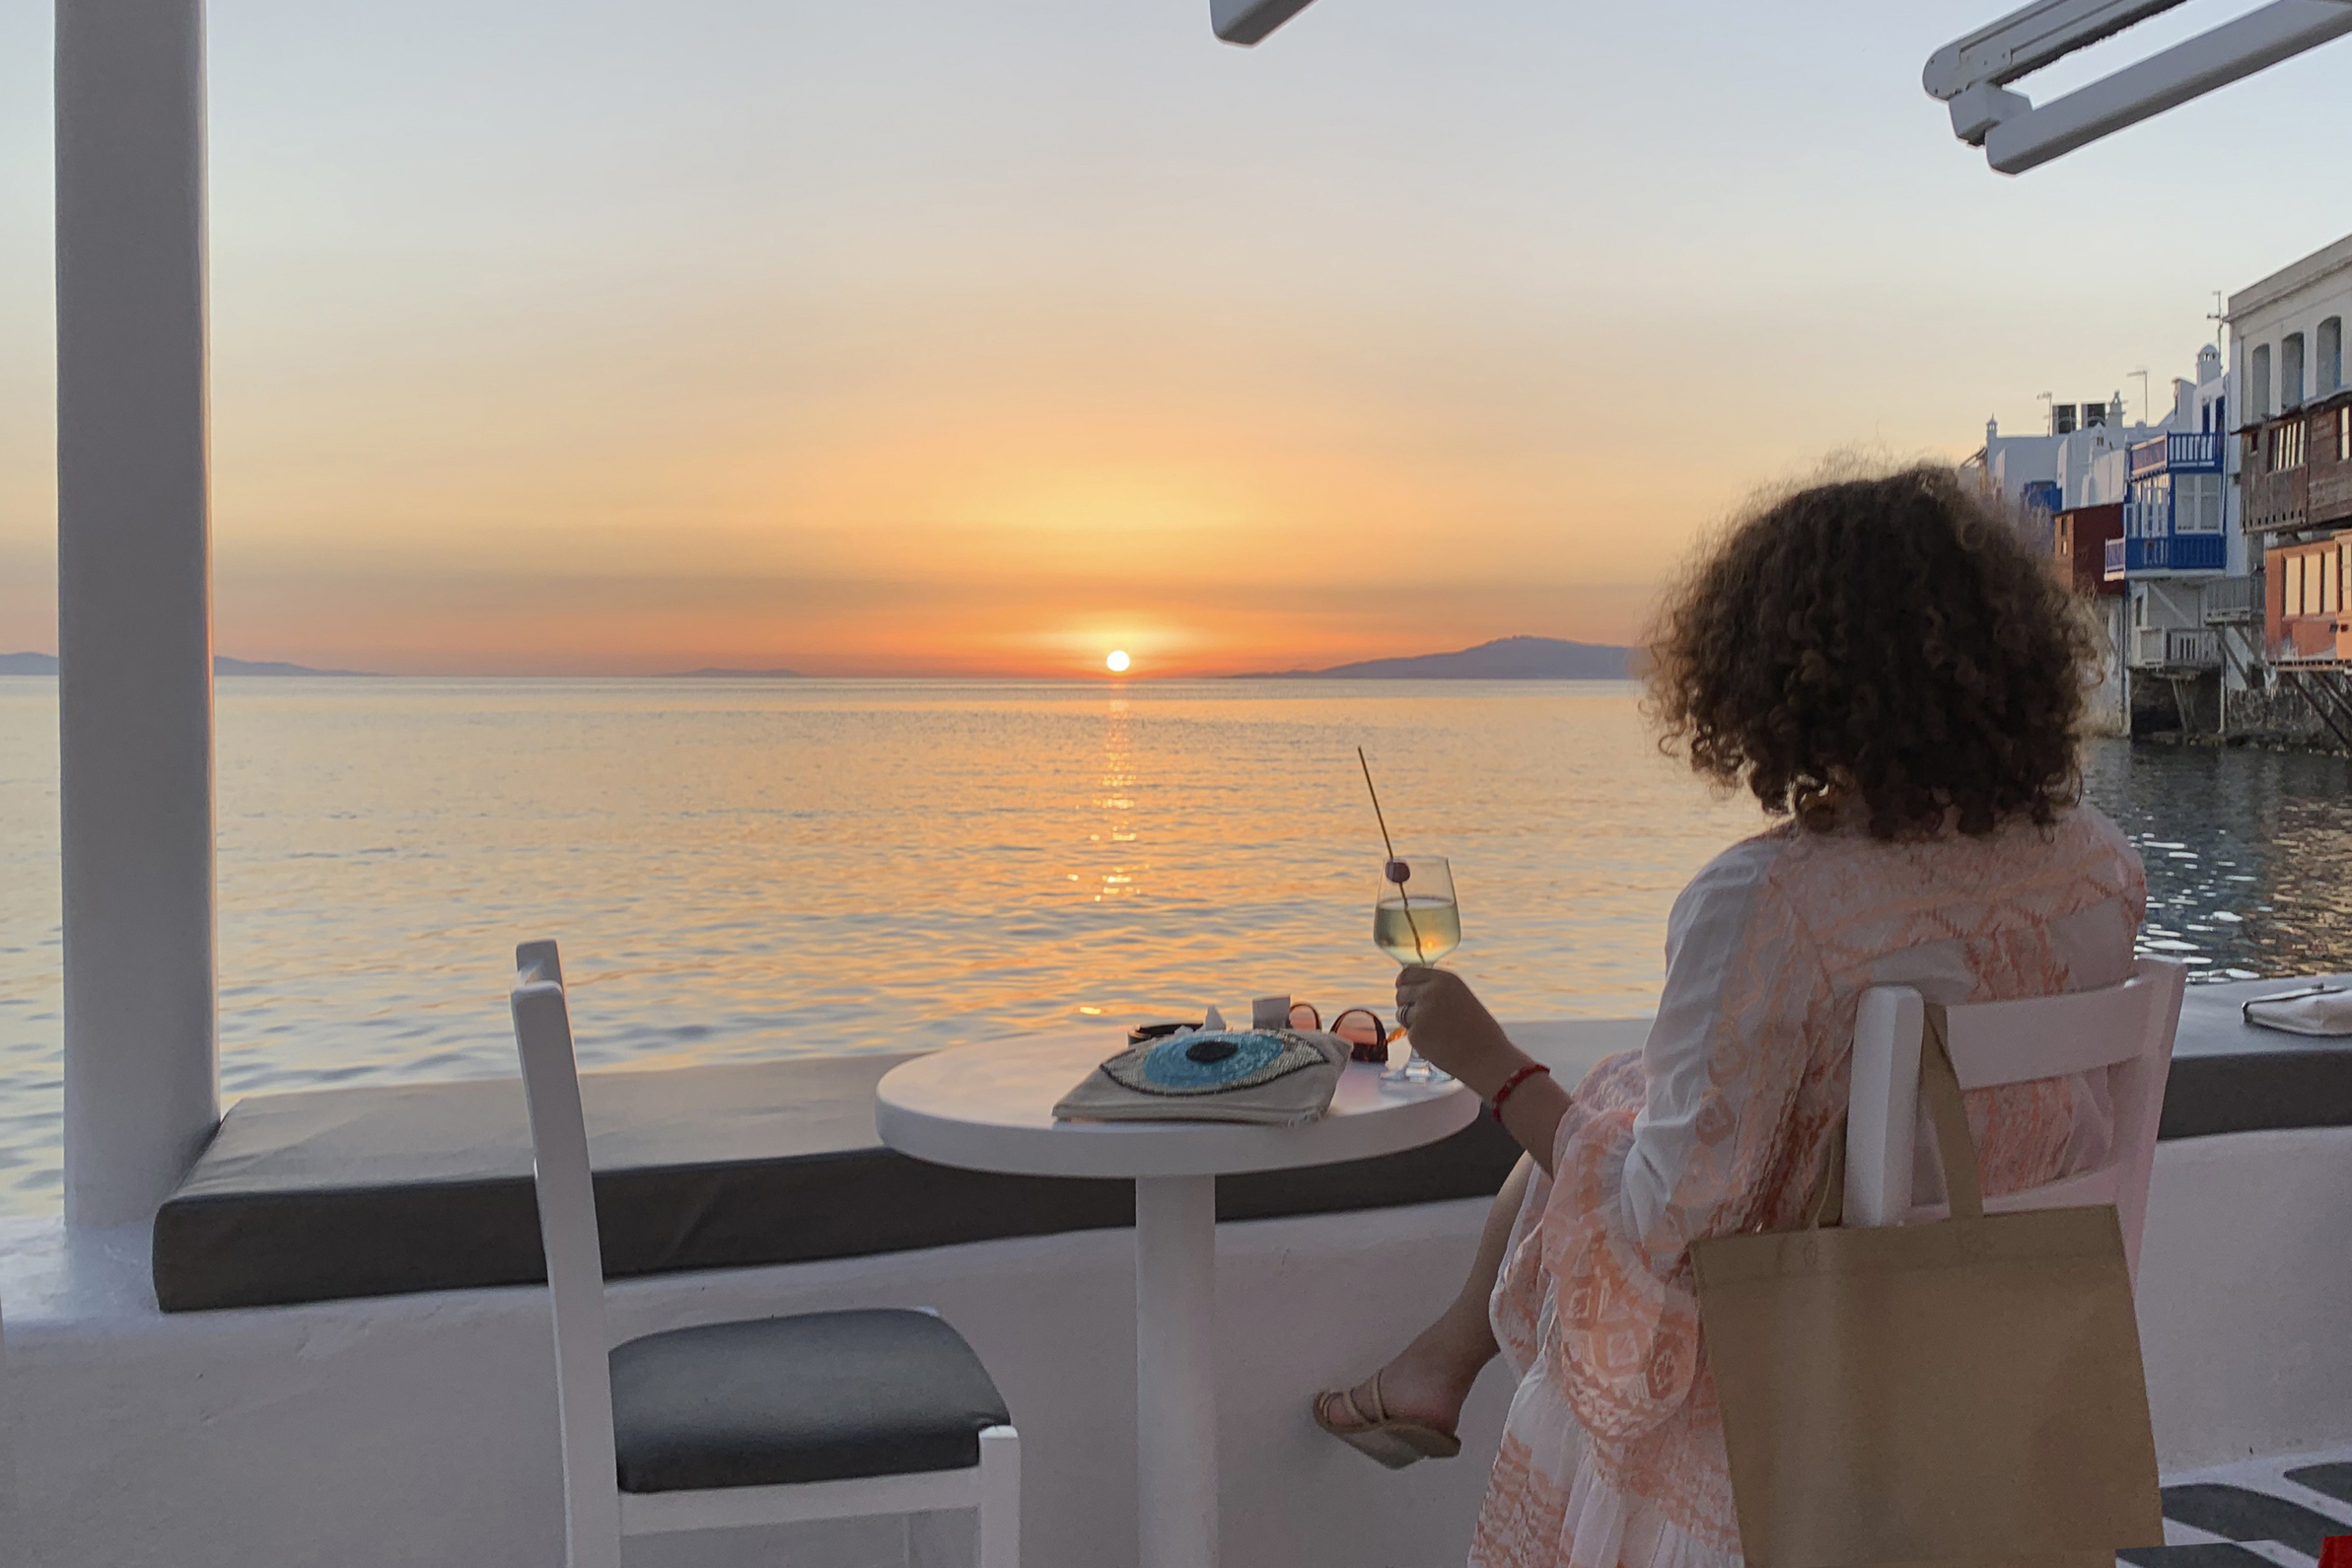 A visitor watches the sunset at a bar in an area known as Little Venice in the main town of the island of Mykonos, Greece, on June 9, 2020.